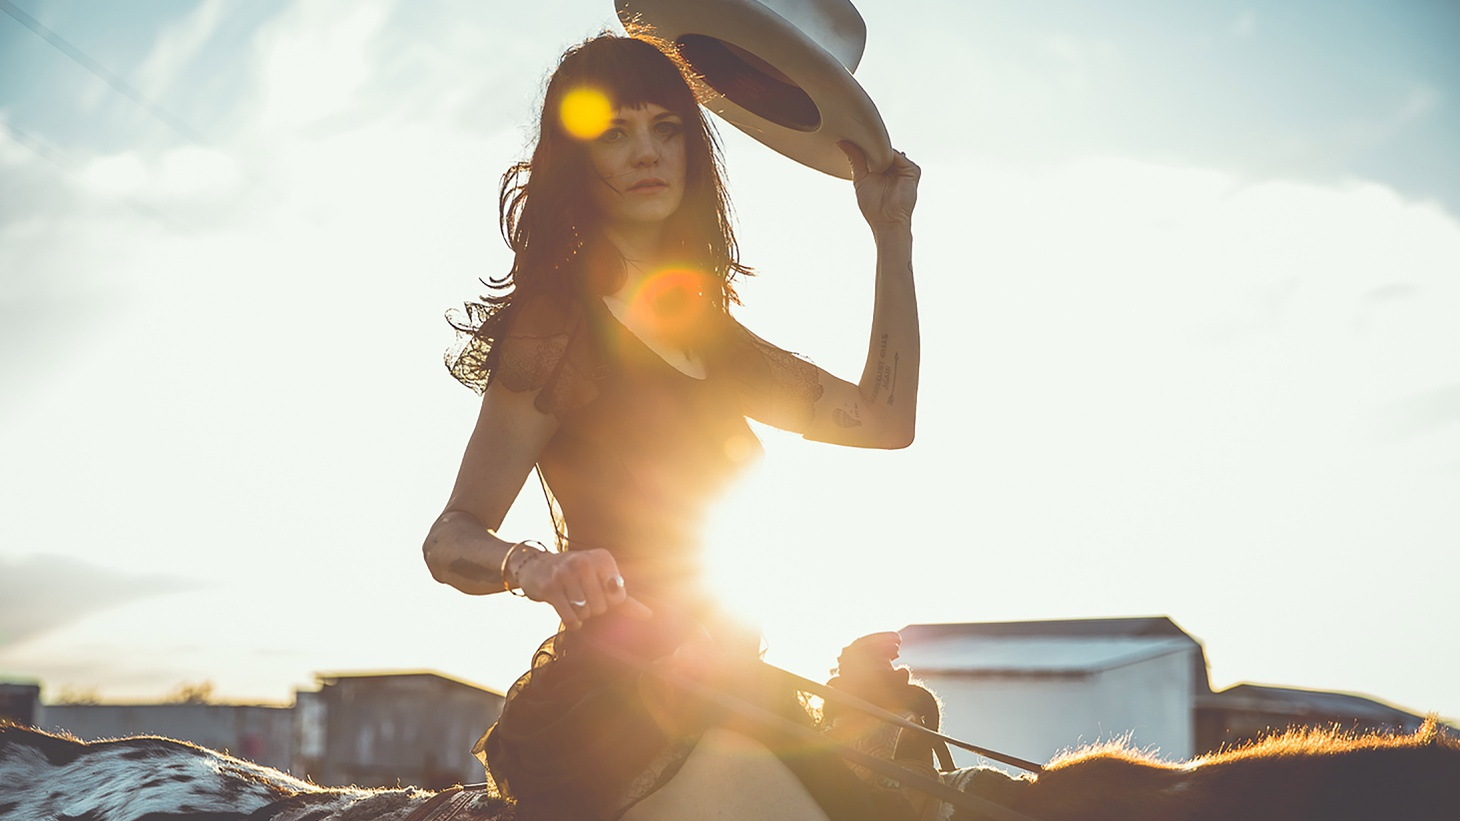 After having two heavy hitters produce her first two records, Nashville-based country singer Nikki Lane decided to take things into her own hands for Highway Queen.